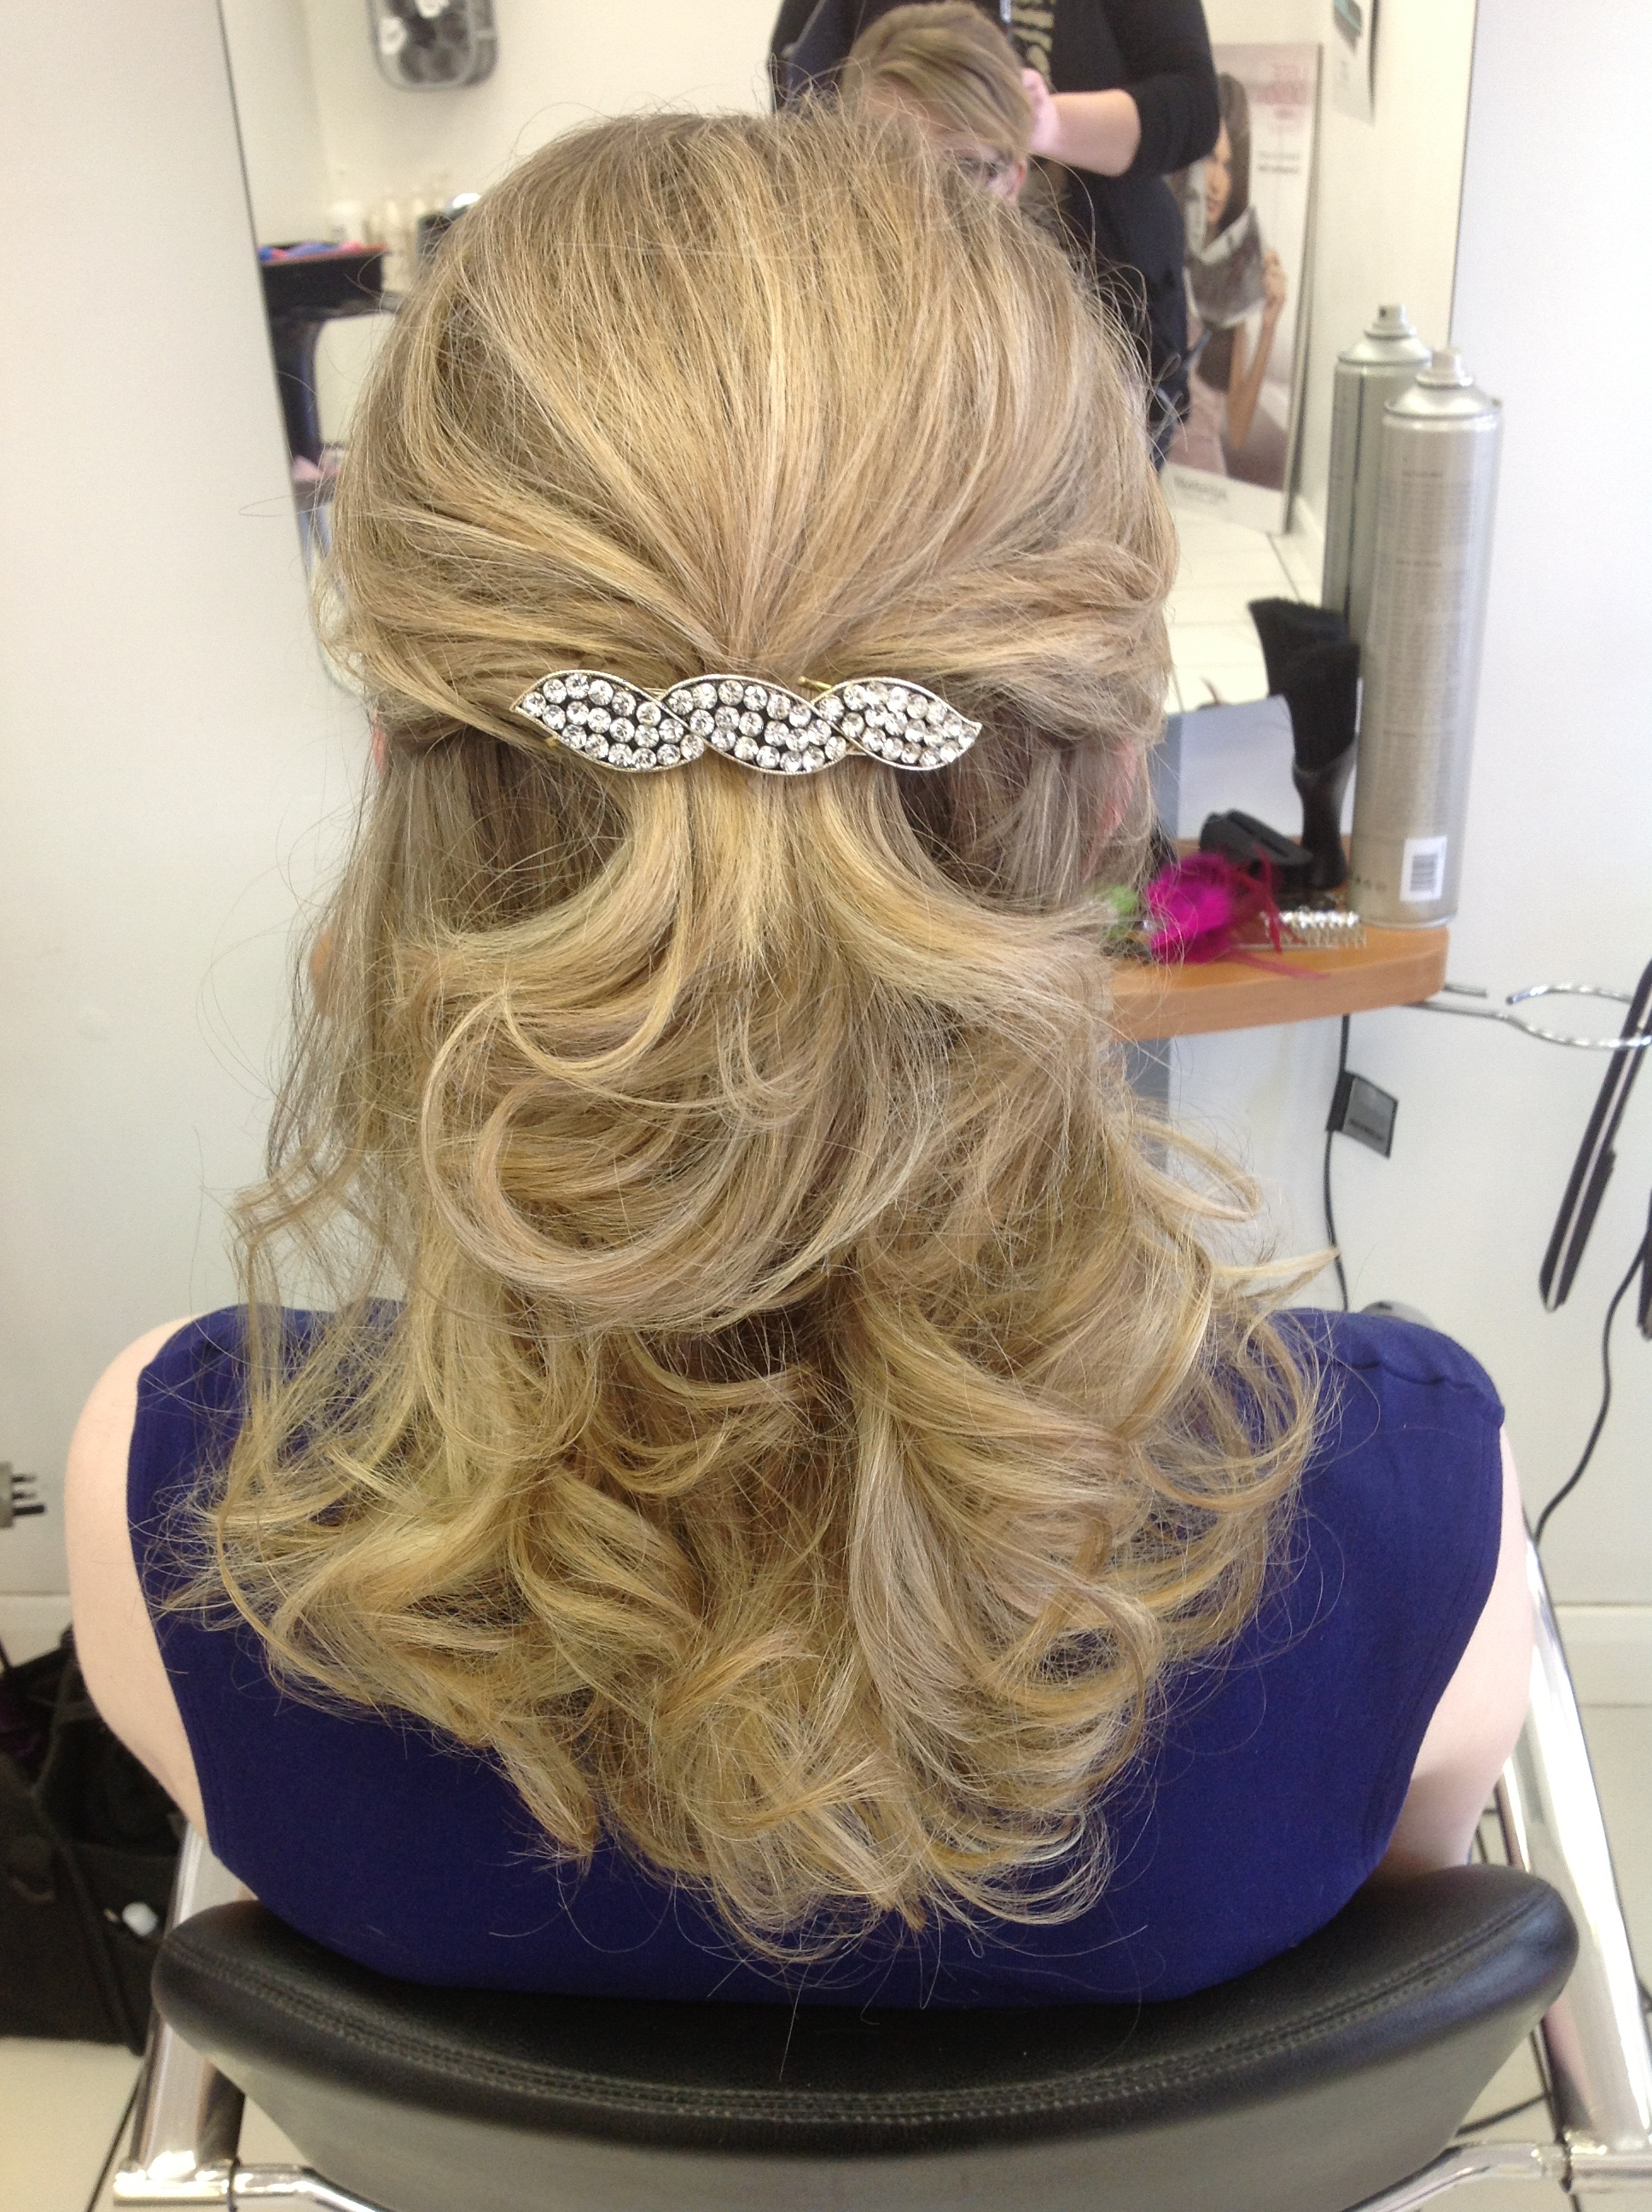 Prom Half Up Hair Style on Blonde Hair